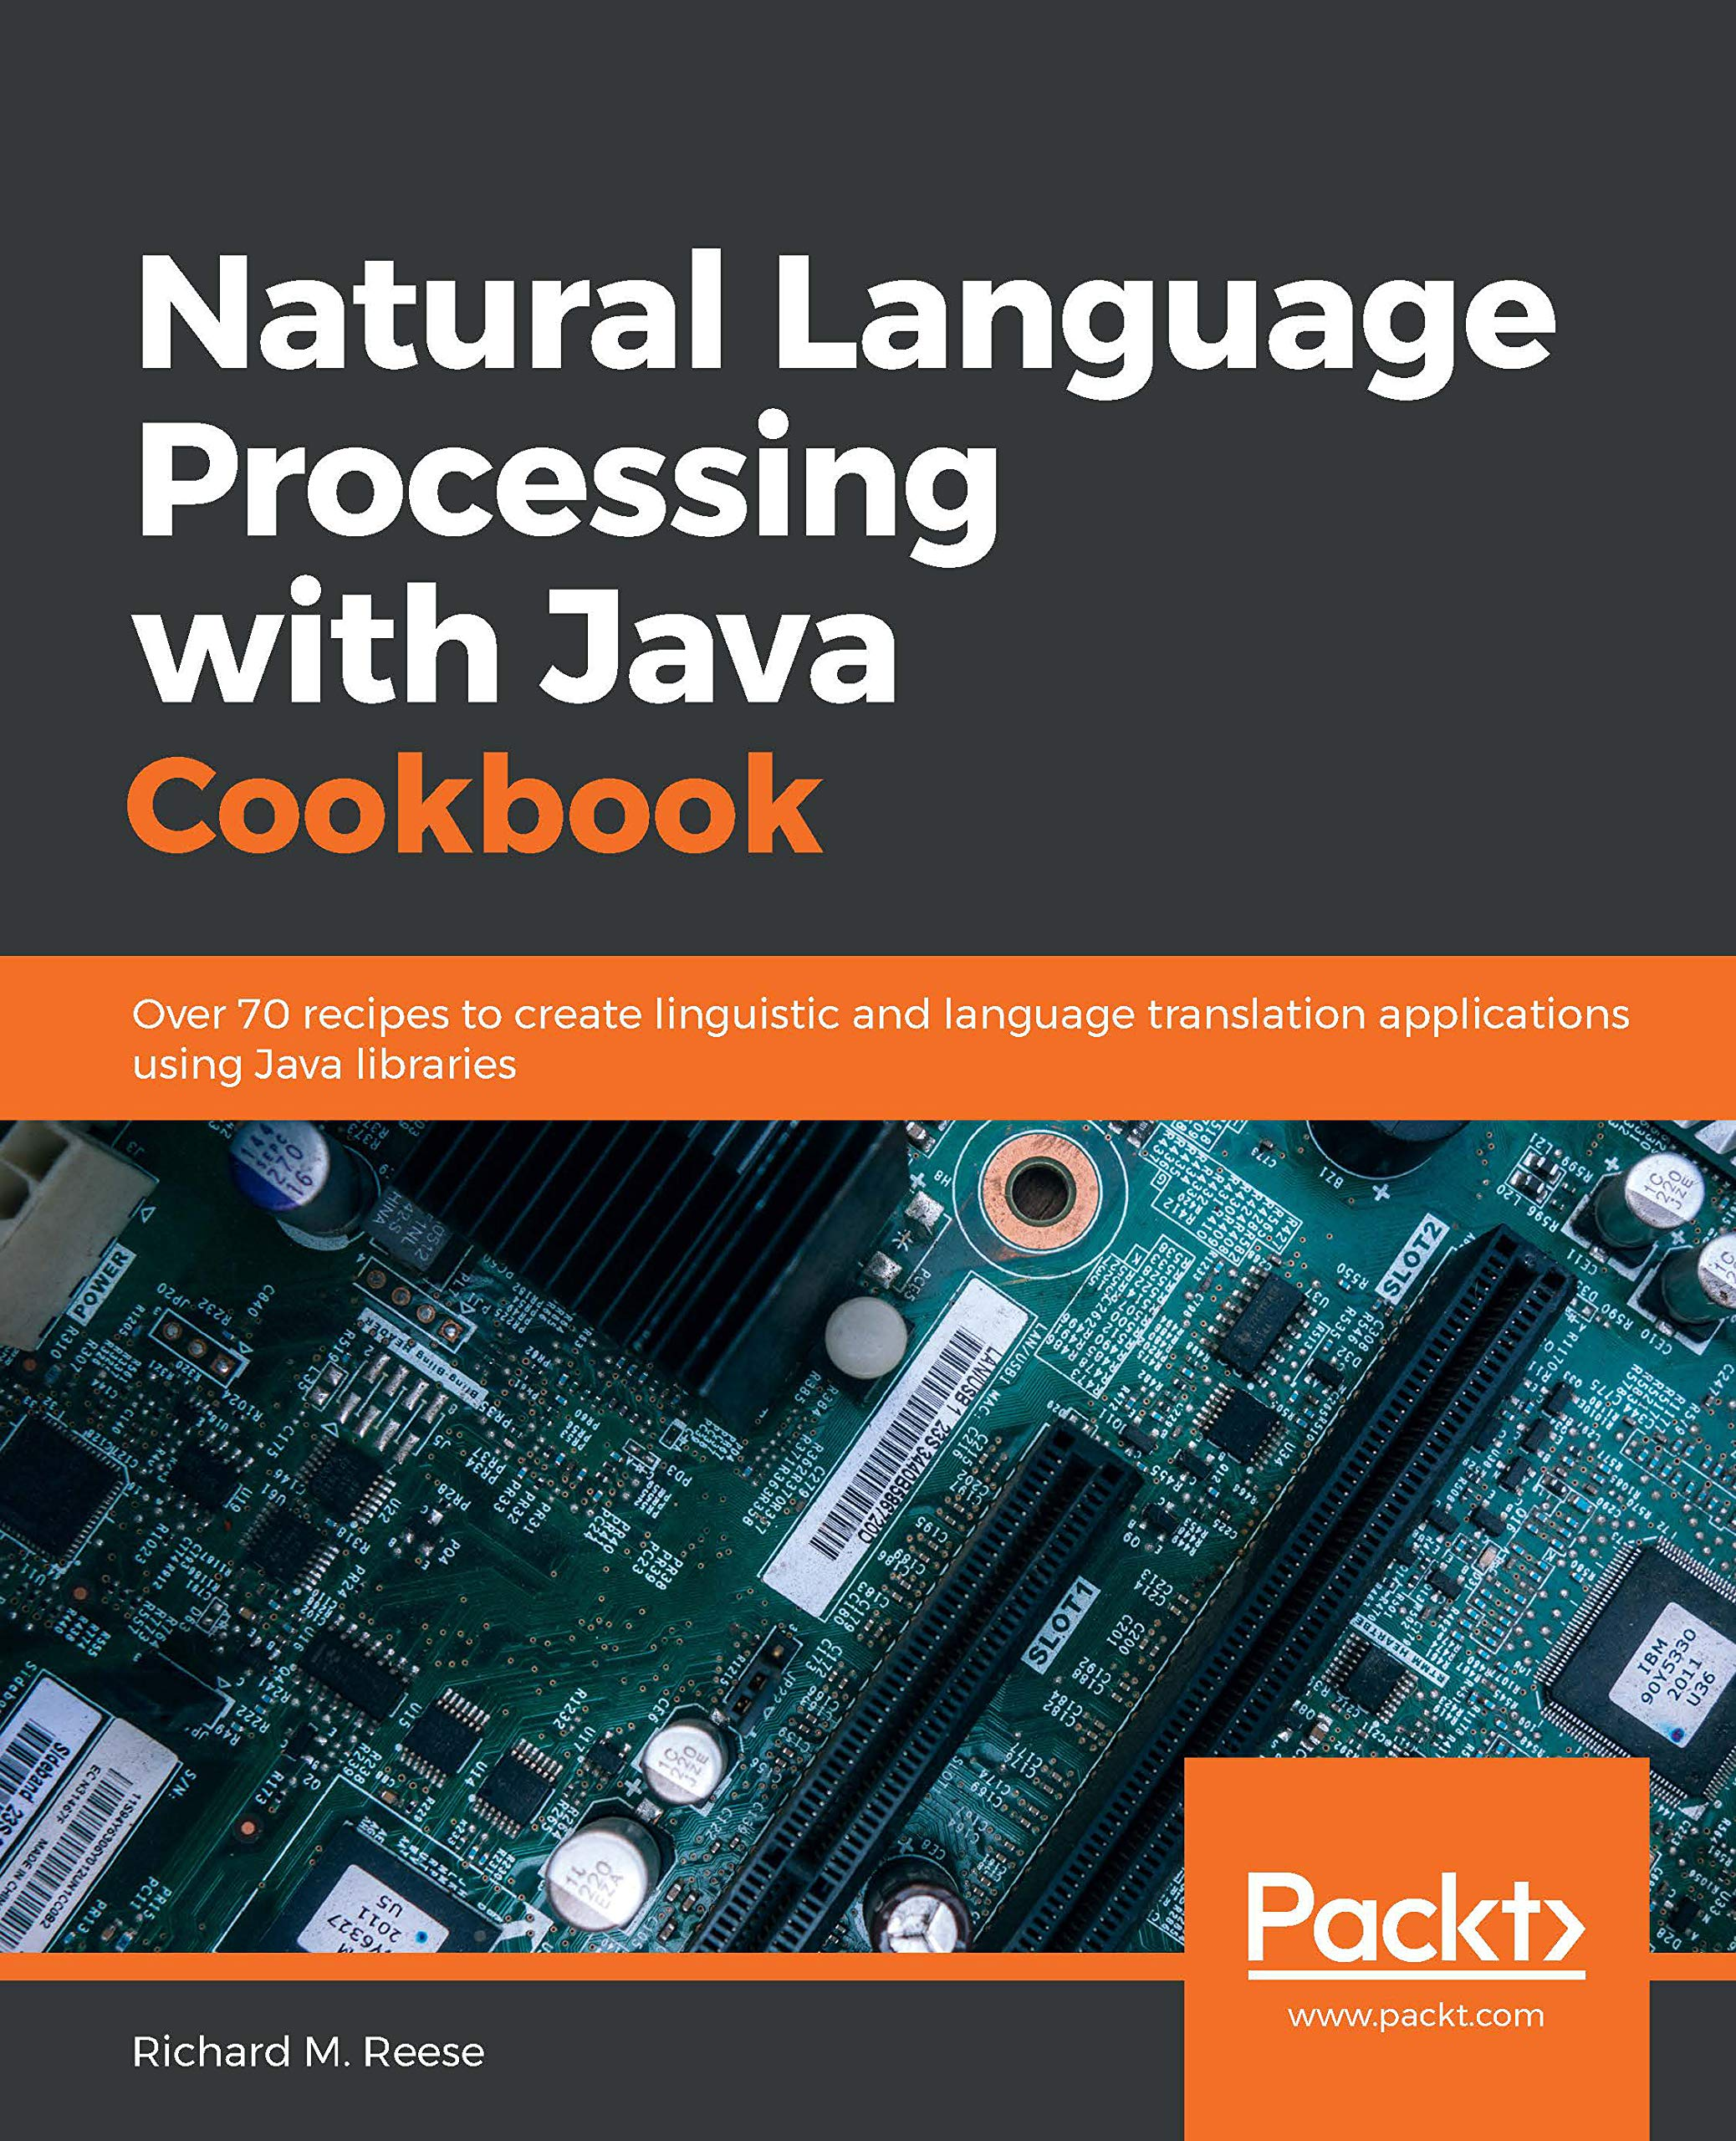 Book Cover of Natural Language Processing with Java Cookbook - Click to open book in a new window